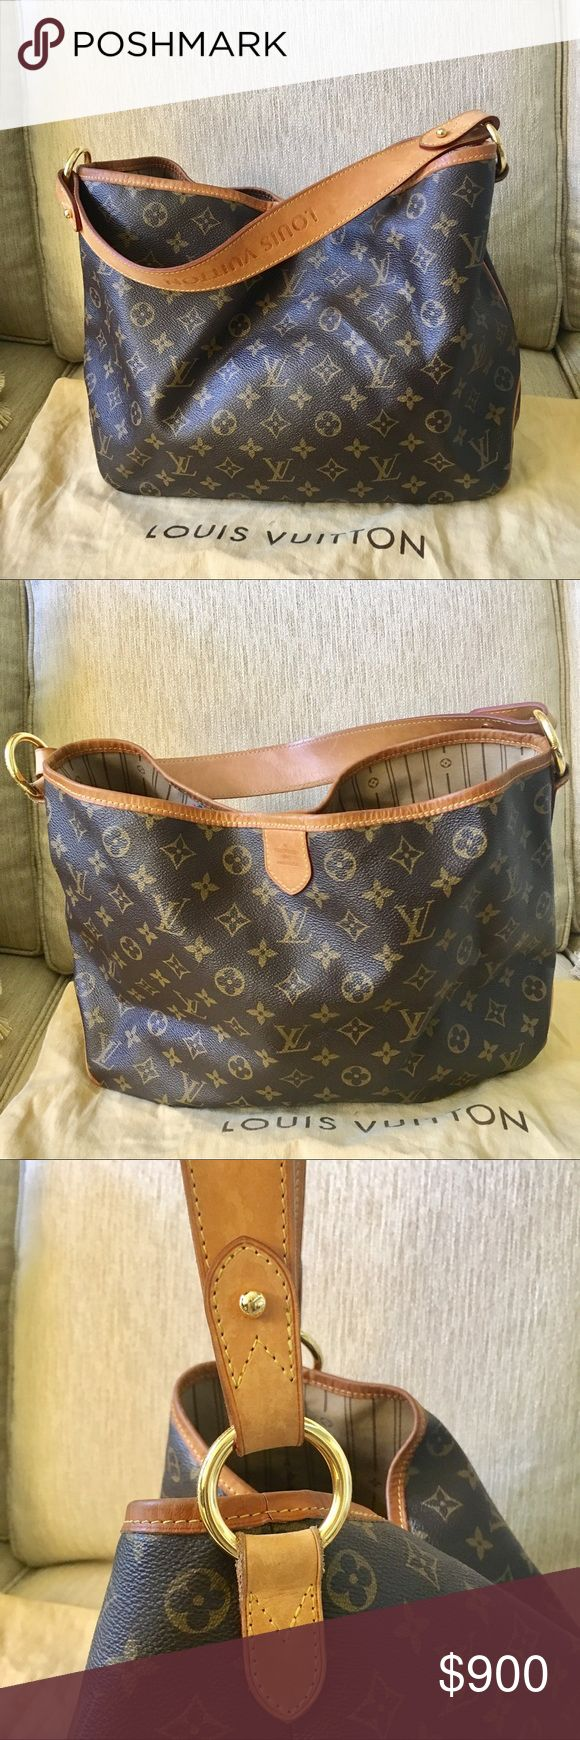 Authentic LV Monogram Delightful PM Authentic LV Monogram Delightful PM lightly worn. Leather shows signs of aging. Canvas is in great condition. Louis Vuitton Bags Shoulder Bags